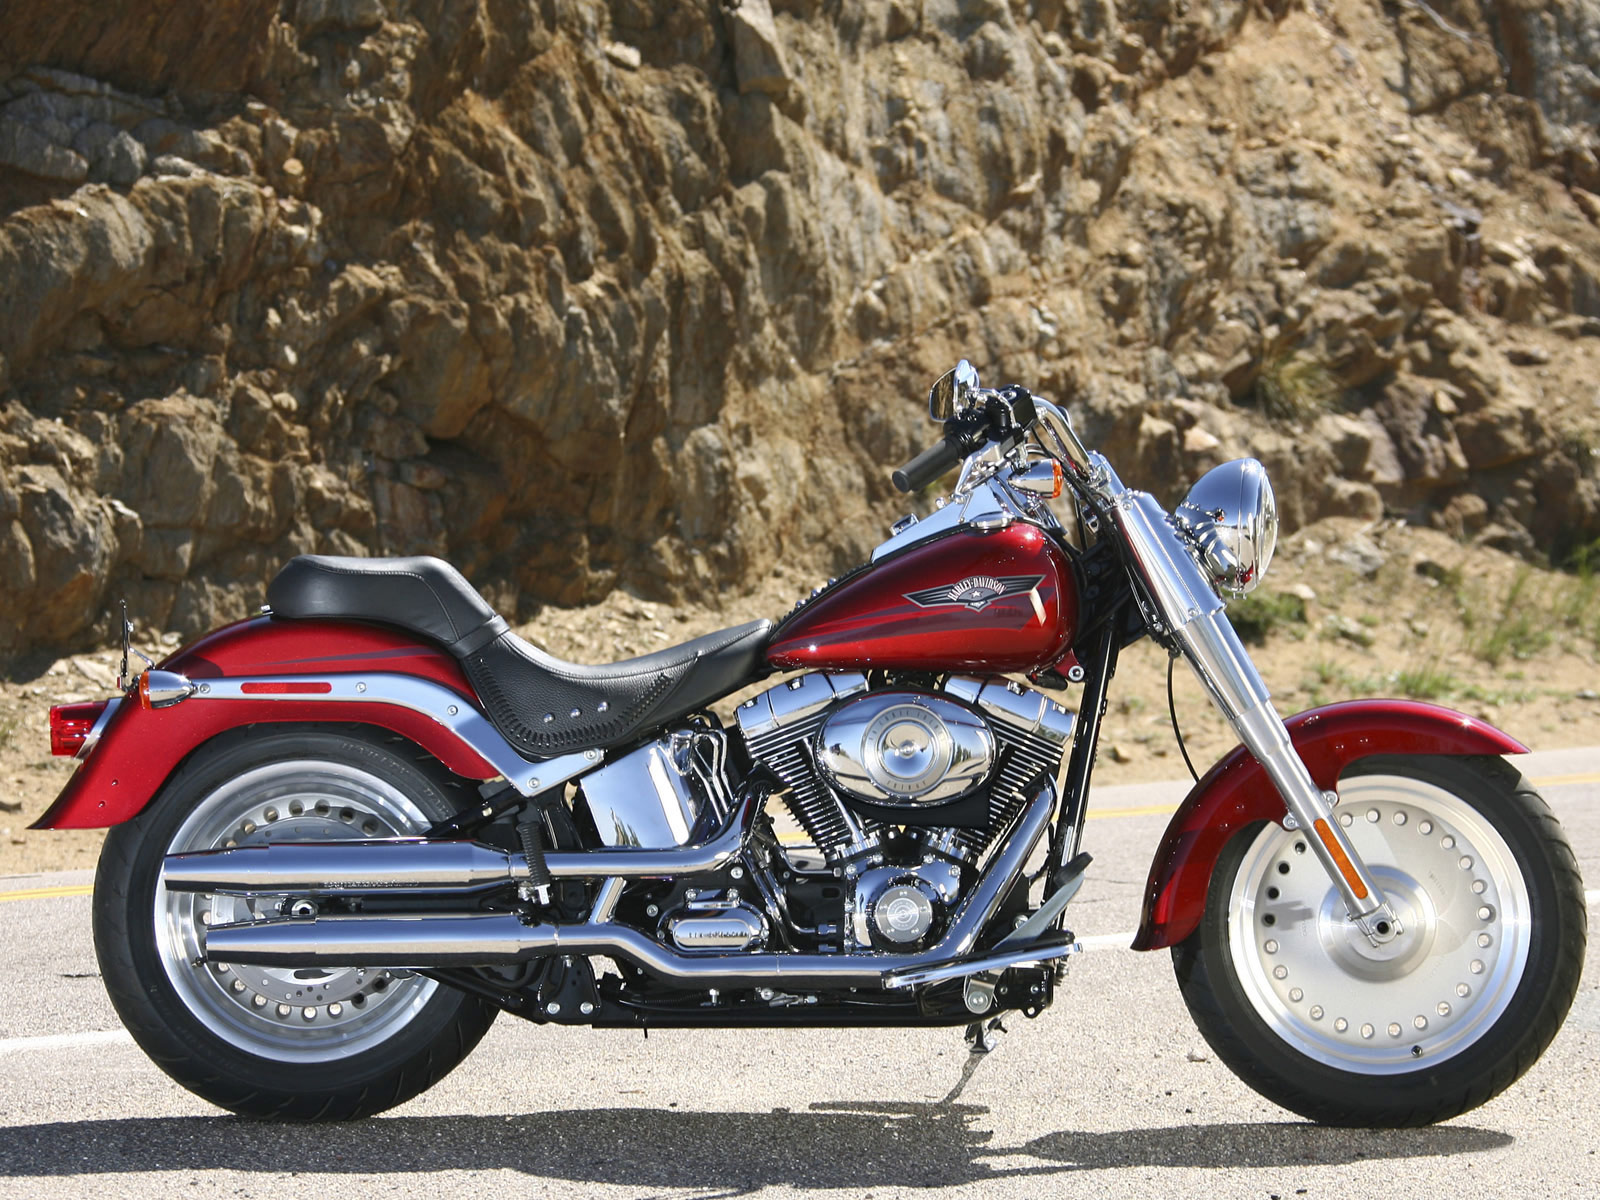 Harley-Davidson FLSTF Fat Boy 2009 images #80424